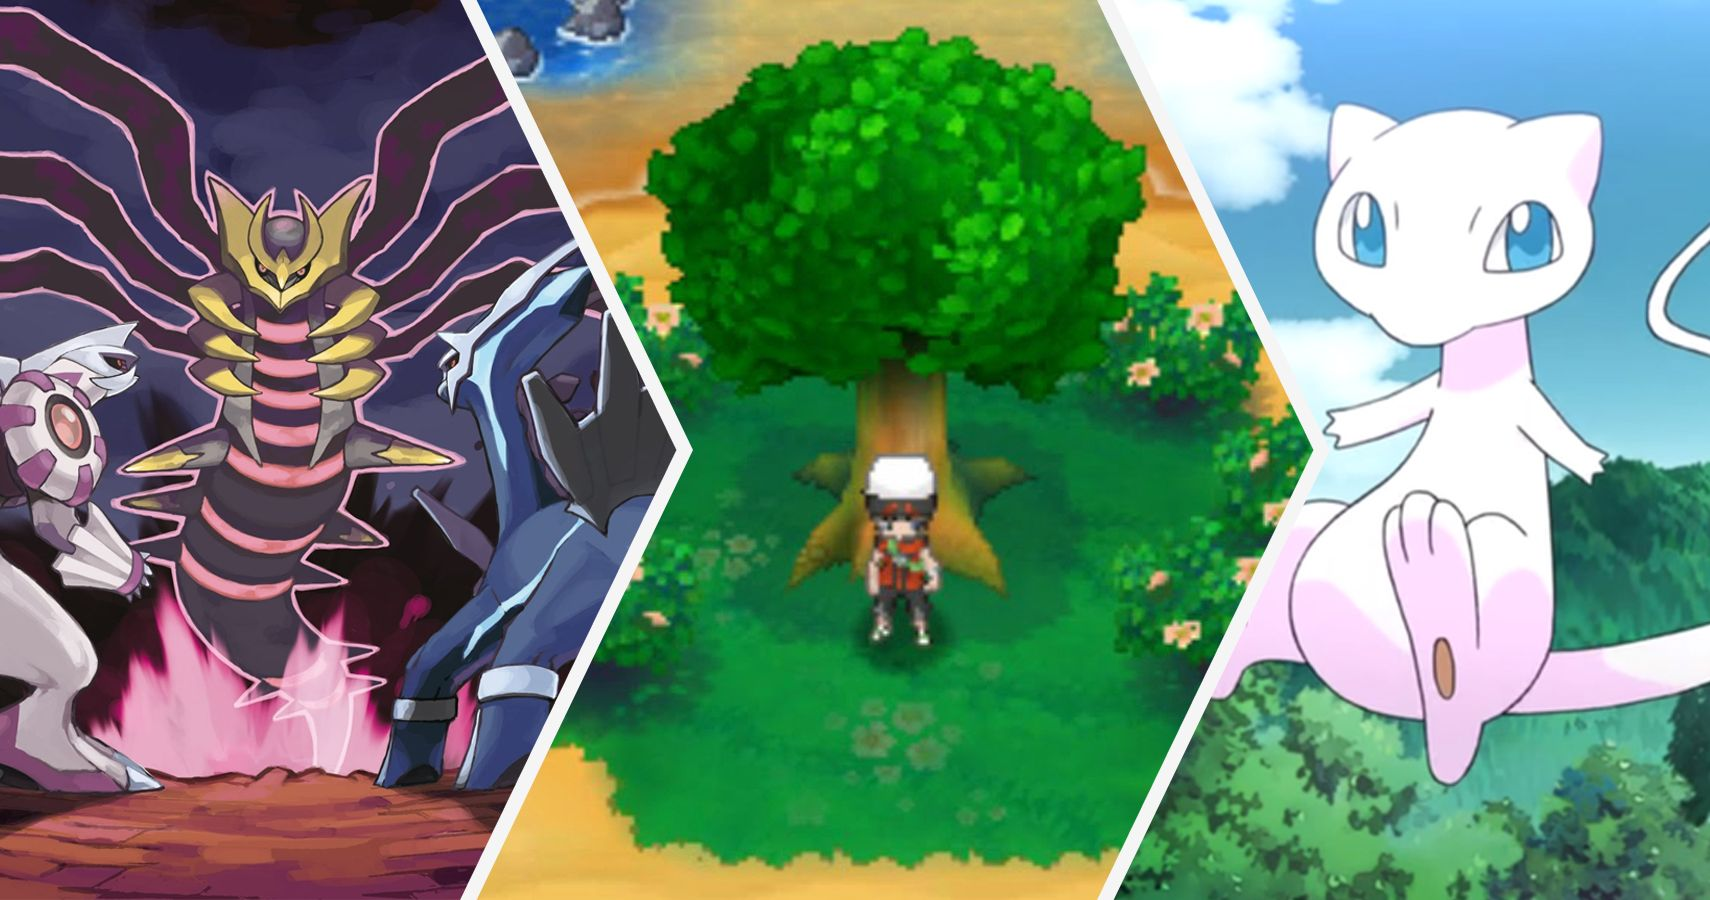 15 Hidden Locations In Pokémon Ruby Sapphire That Only Experts Found